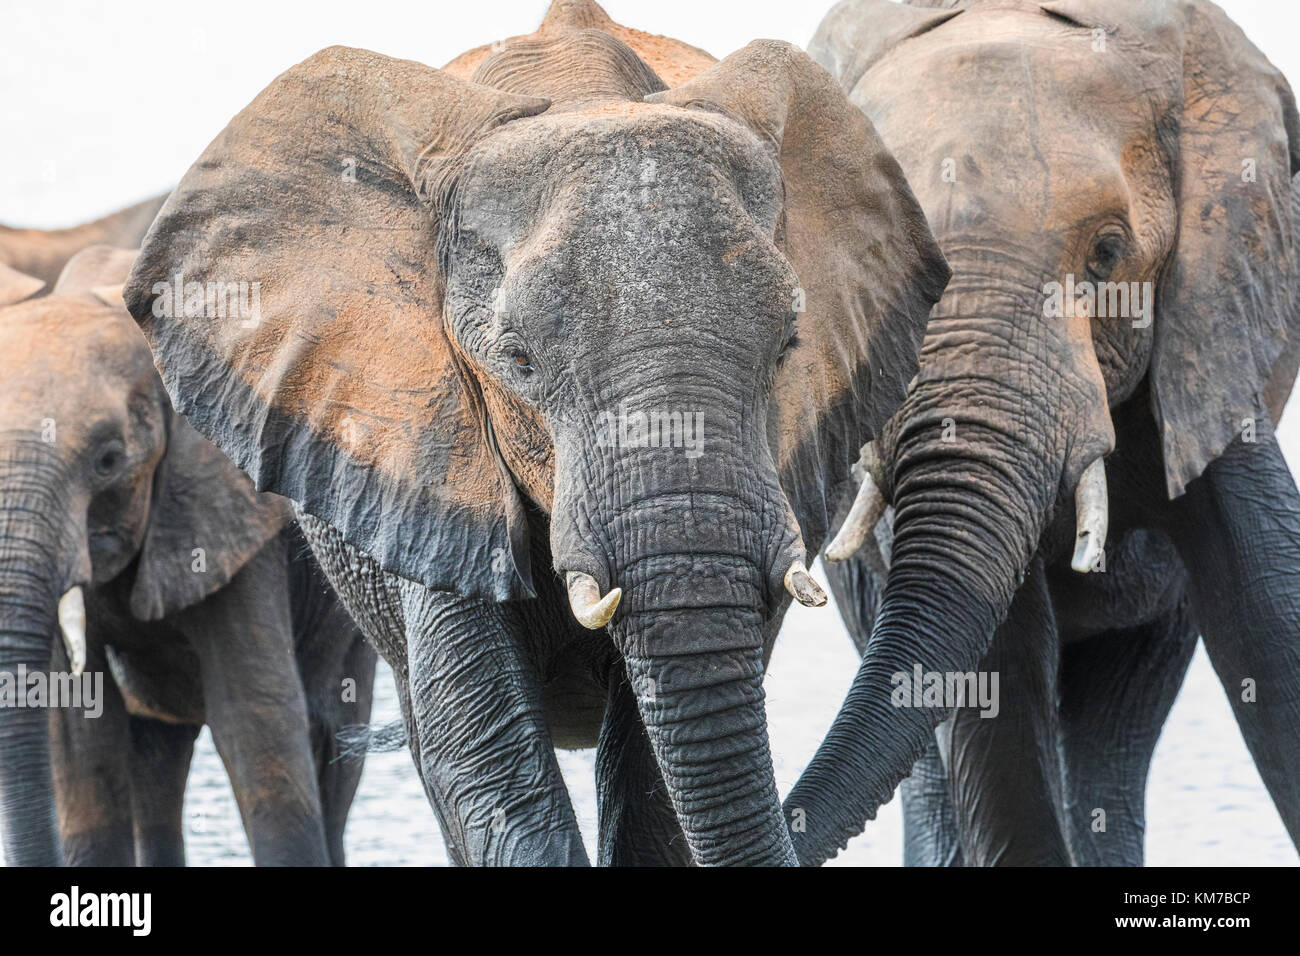 close up elephant portrait, three individuals emerge from the Chobe River, Botswana, after their bath. - Stock Image